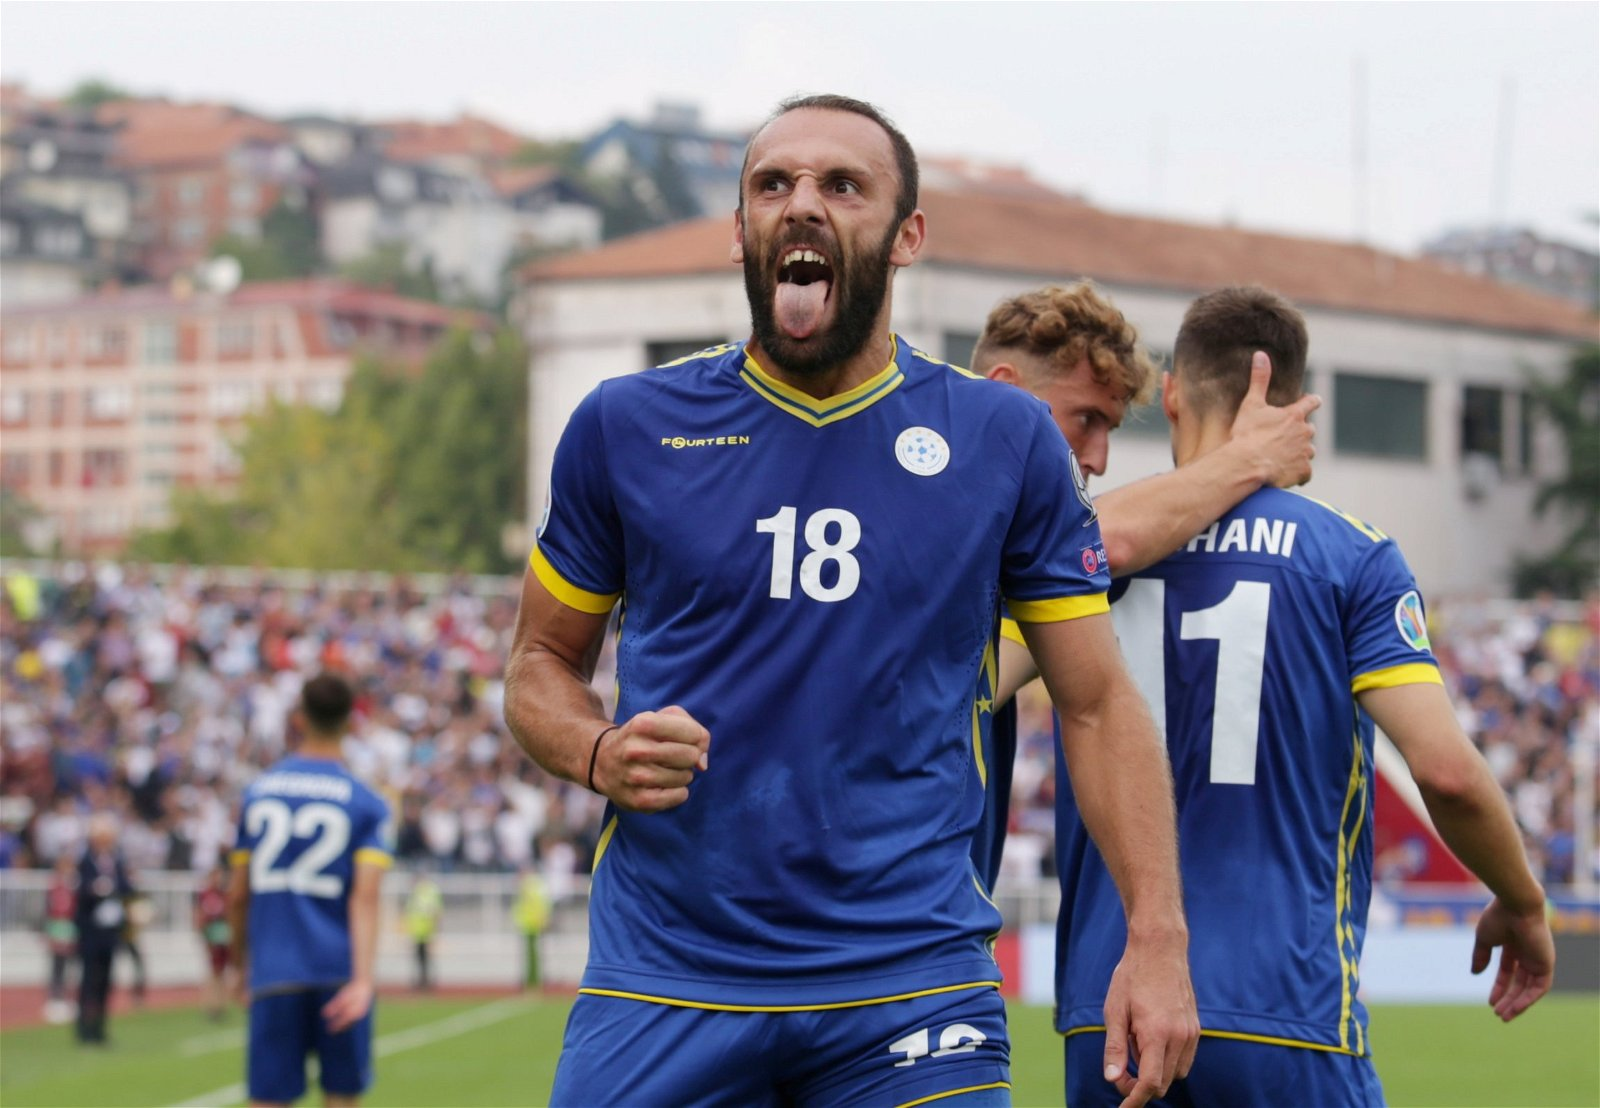 Vedat Muriqi celebrating after scoring for Kosovo against Czech Republic - [Roundup] PL trio being monitored, Spurs scouting mission, Defender happy to stay